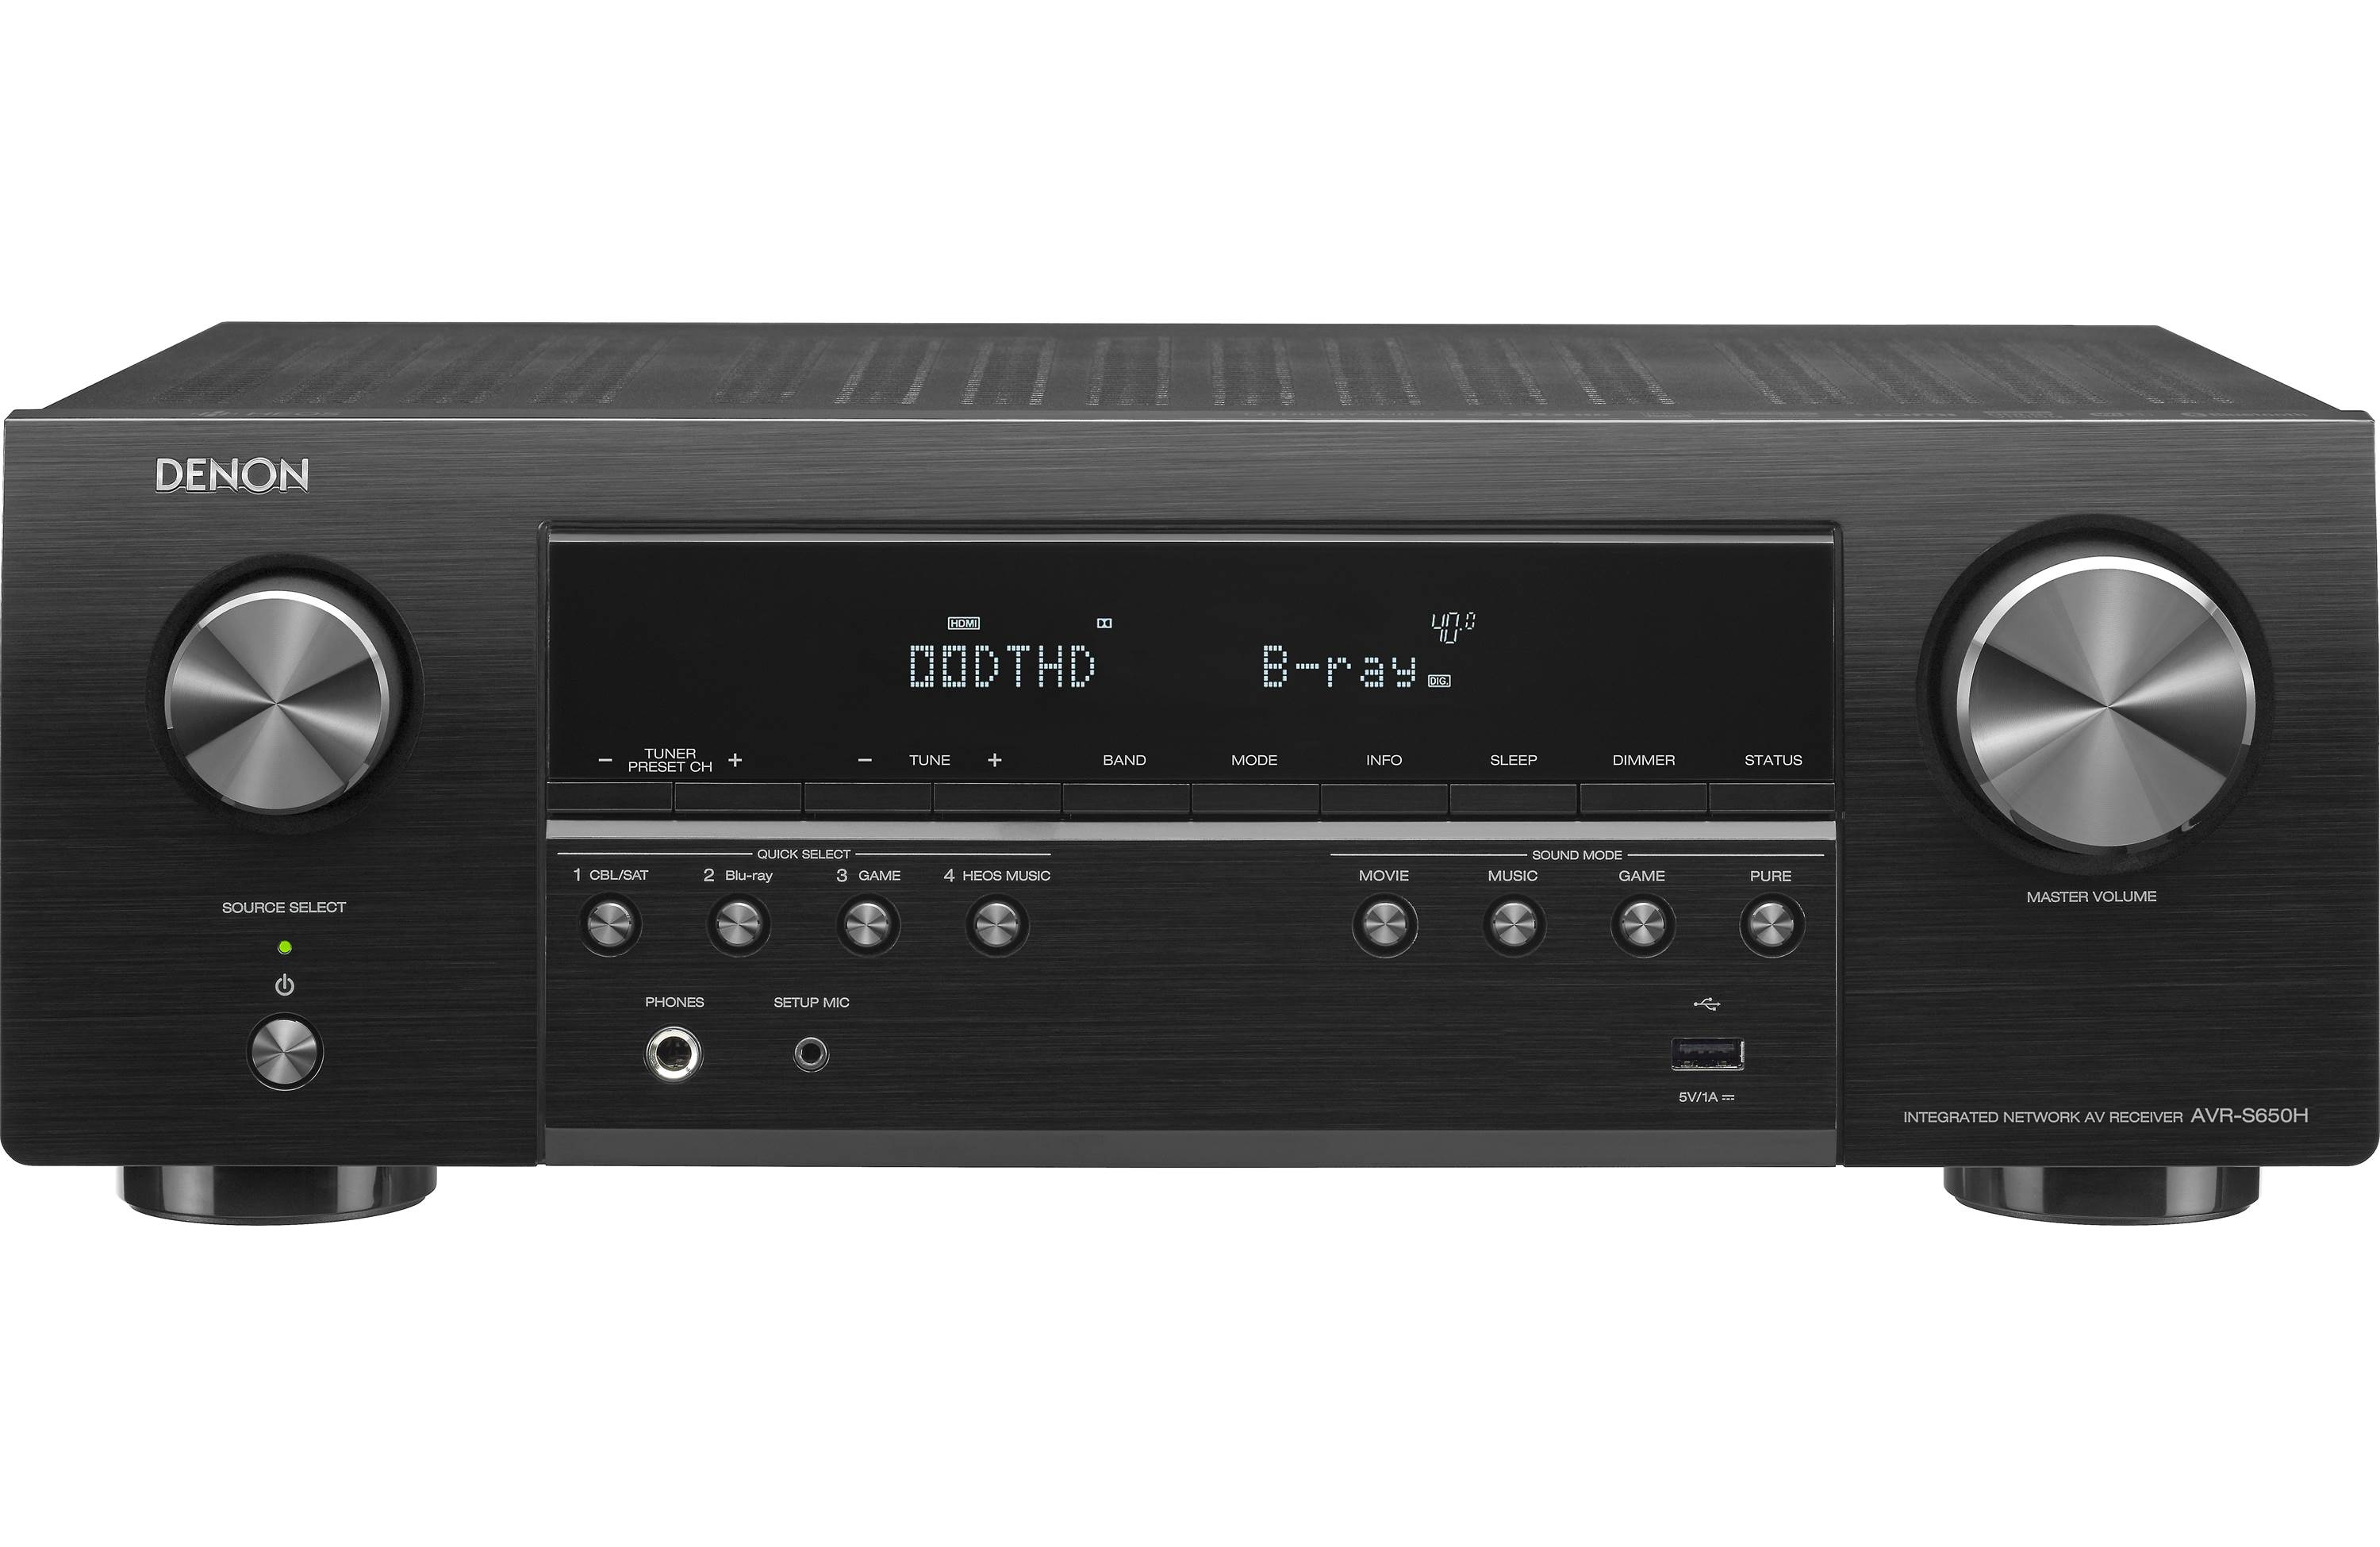 Denon AVR-S650H Review - Features and Specs | ZKelectronics